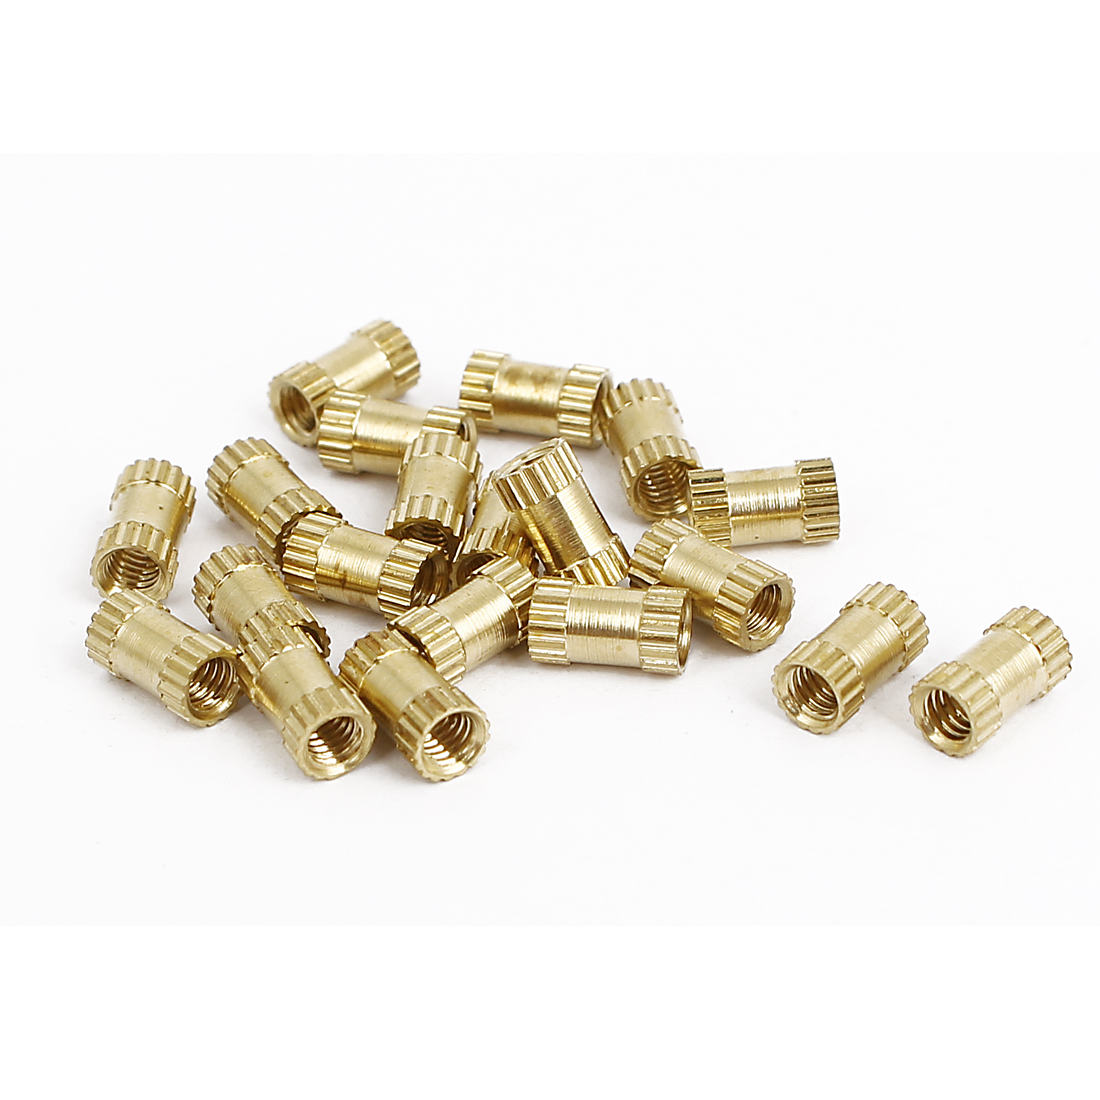 M2.5x6mmx3.5mm Female Thread Brass Knurled Insert Embedded Nuts Gold Tone 20pcs